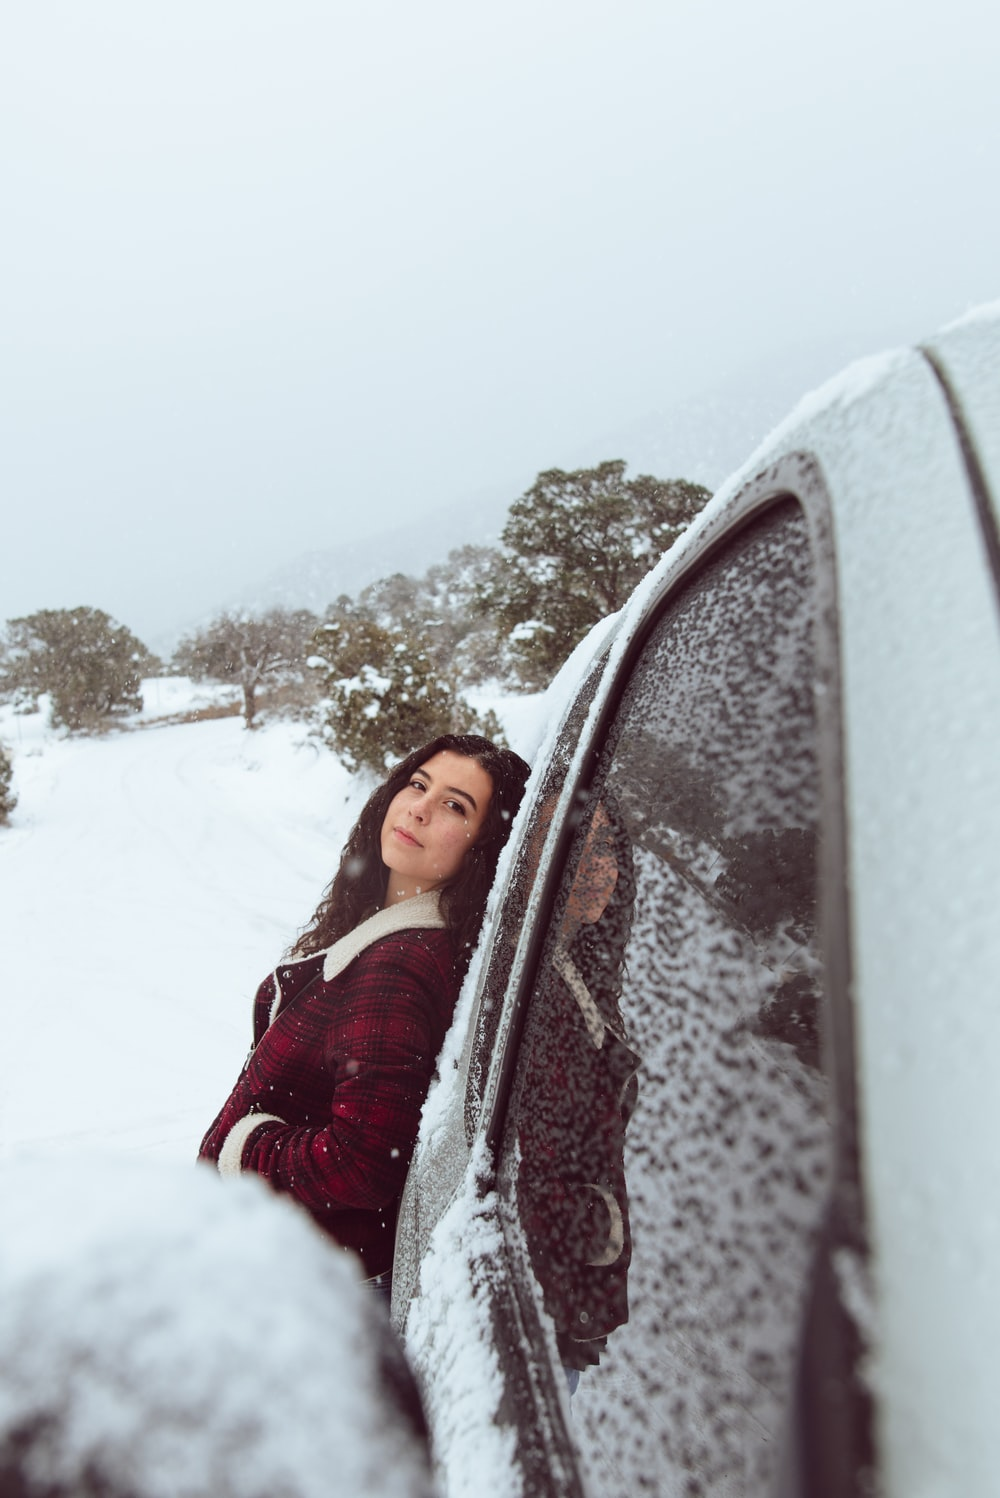 woman in red and white jacket leaning on car during winter season